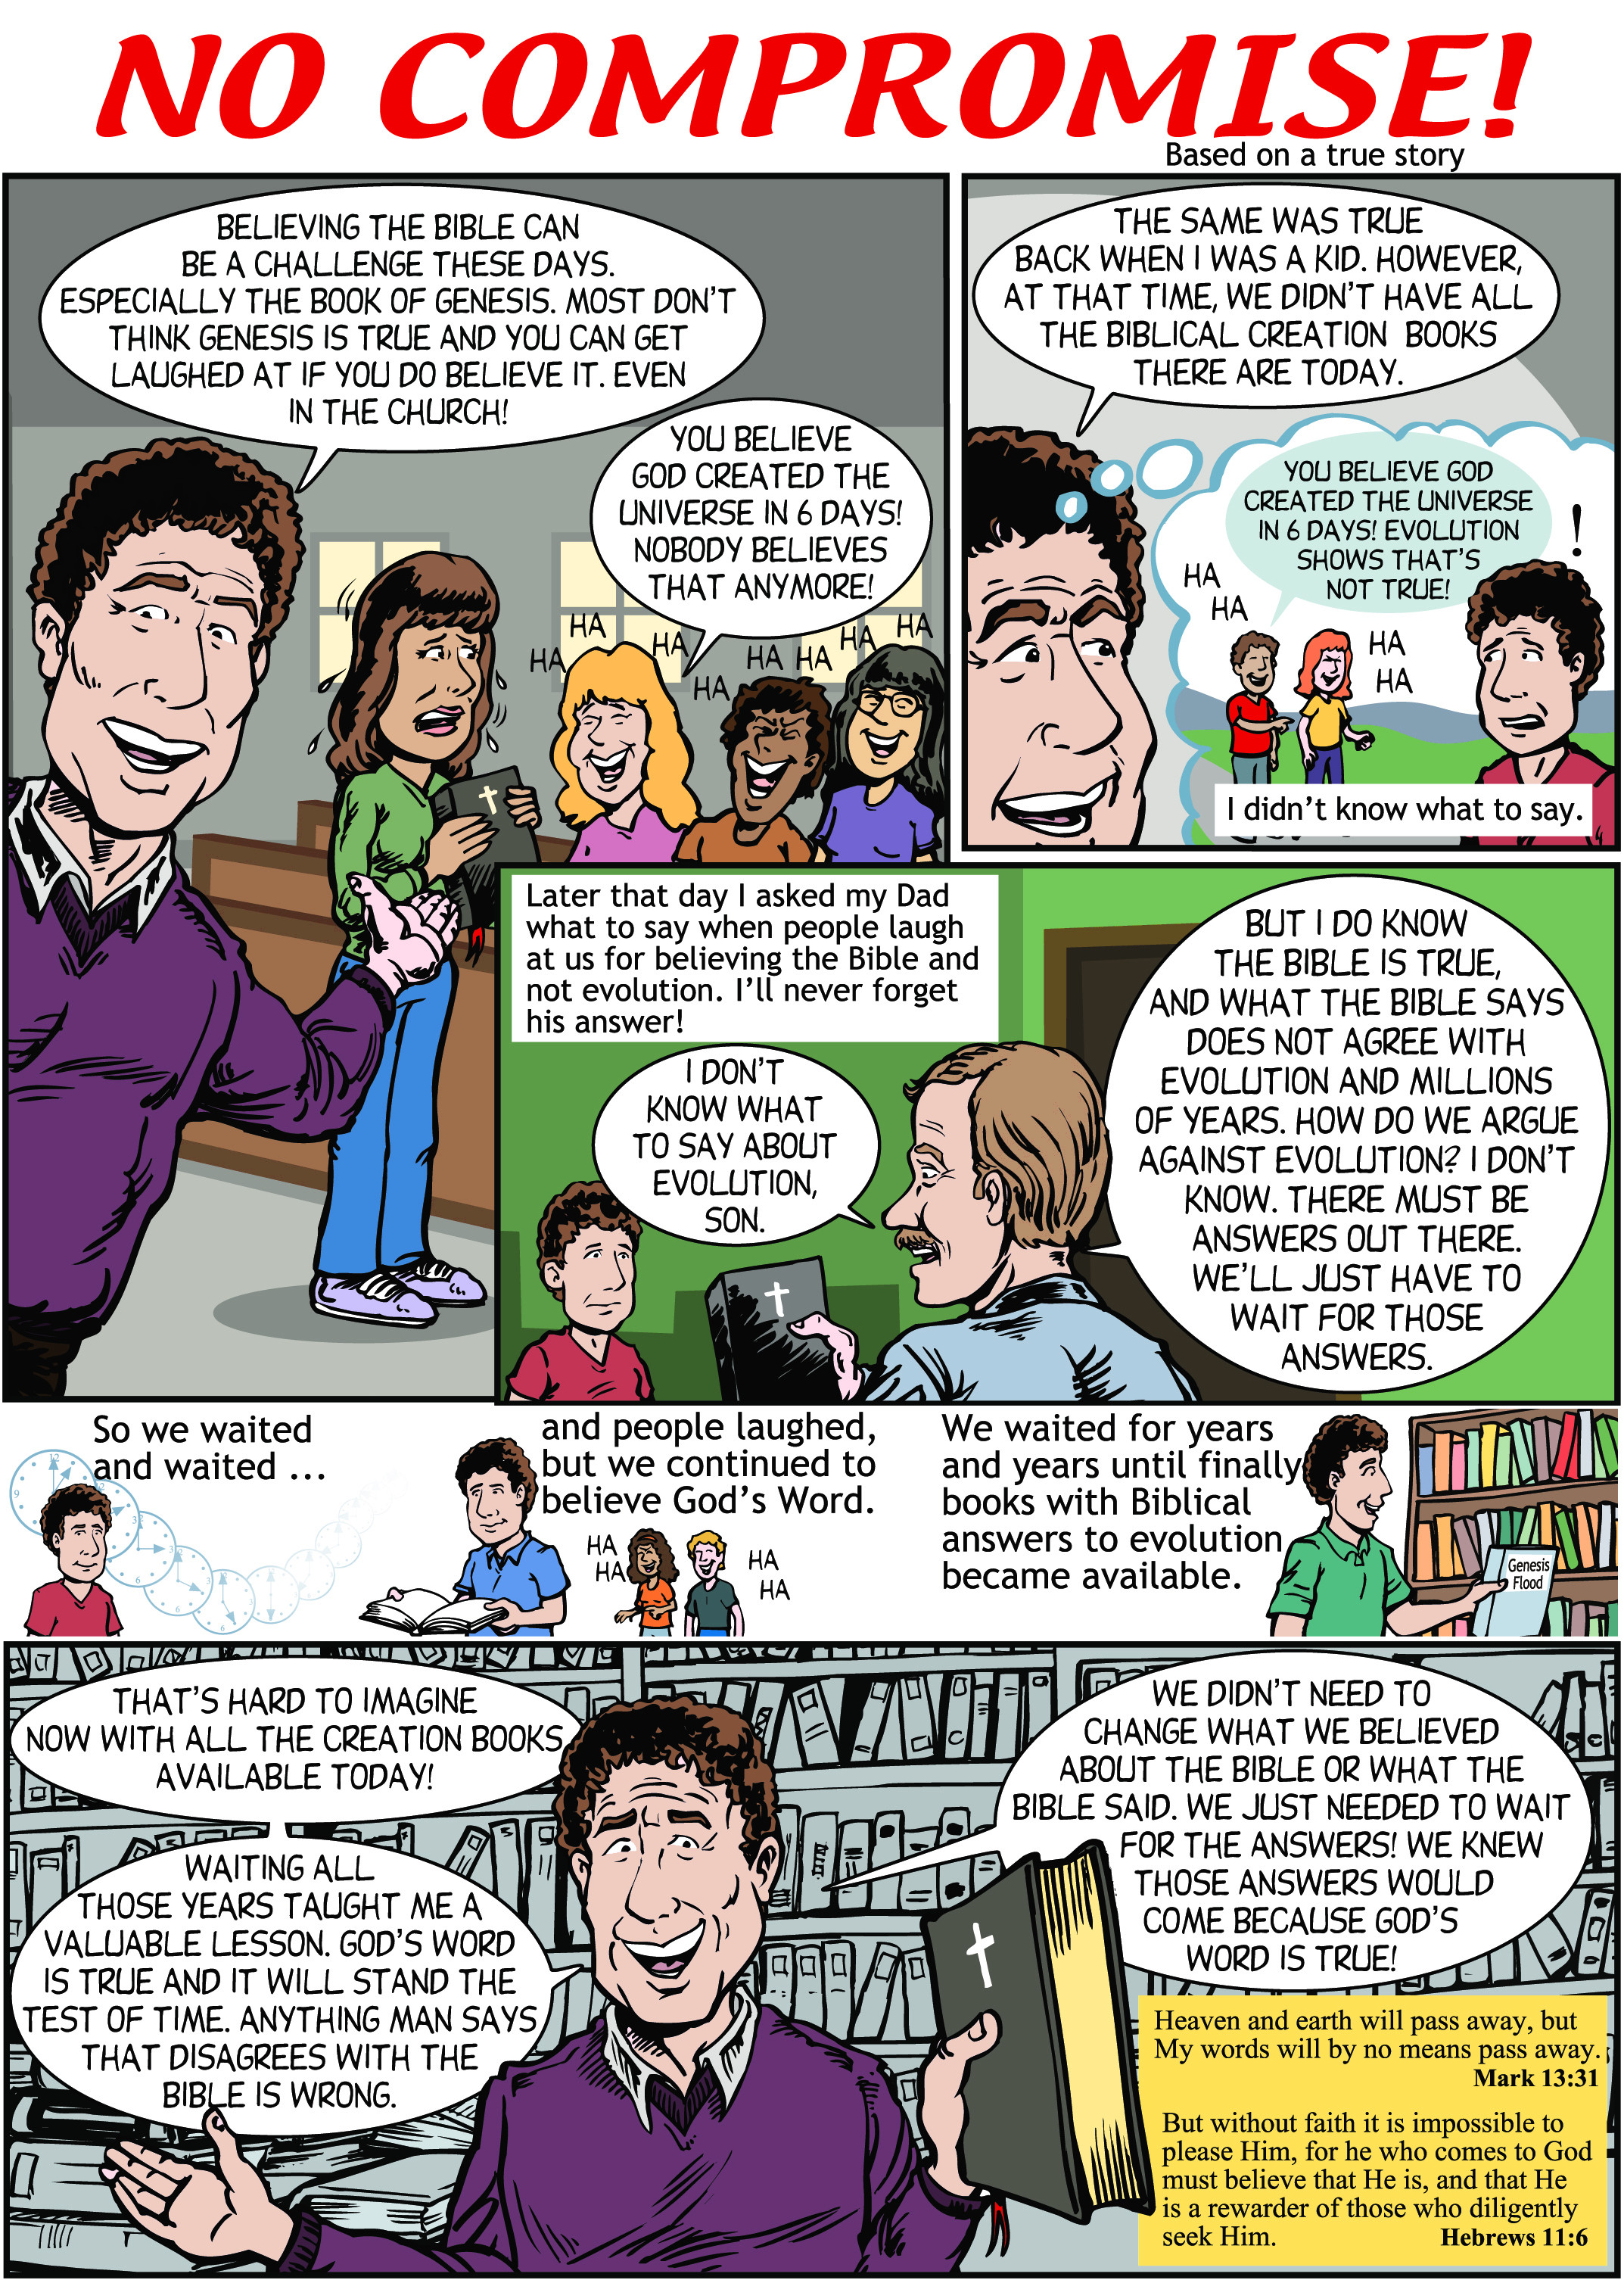 Answers for Kids: Compromise - creation com